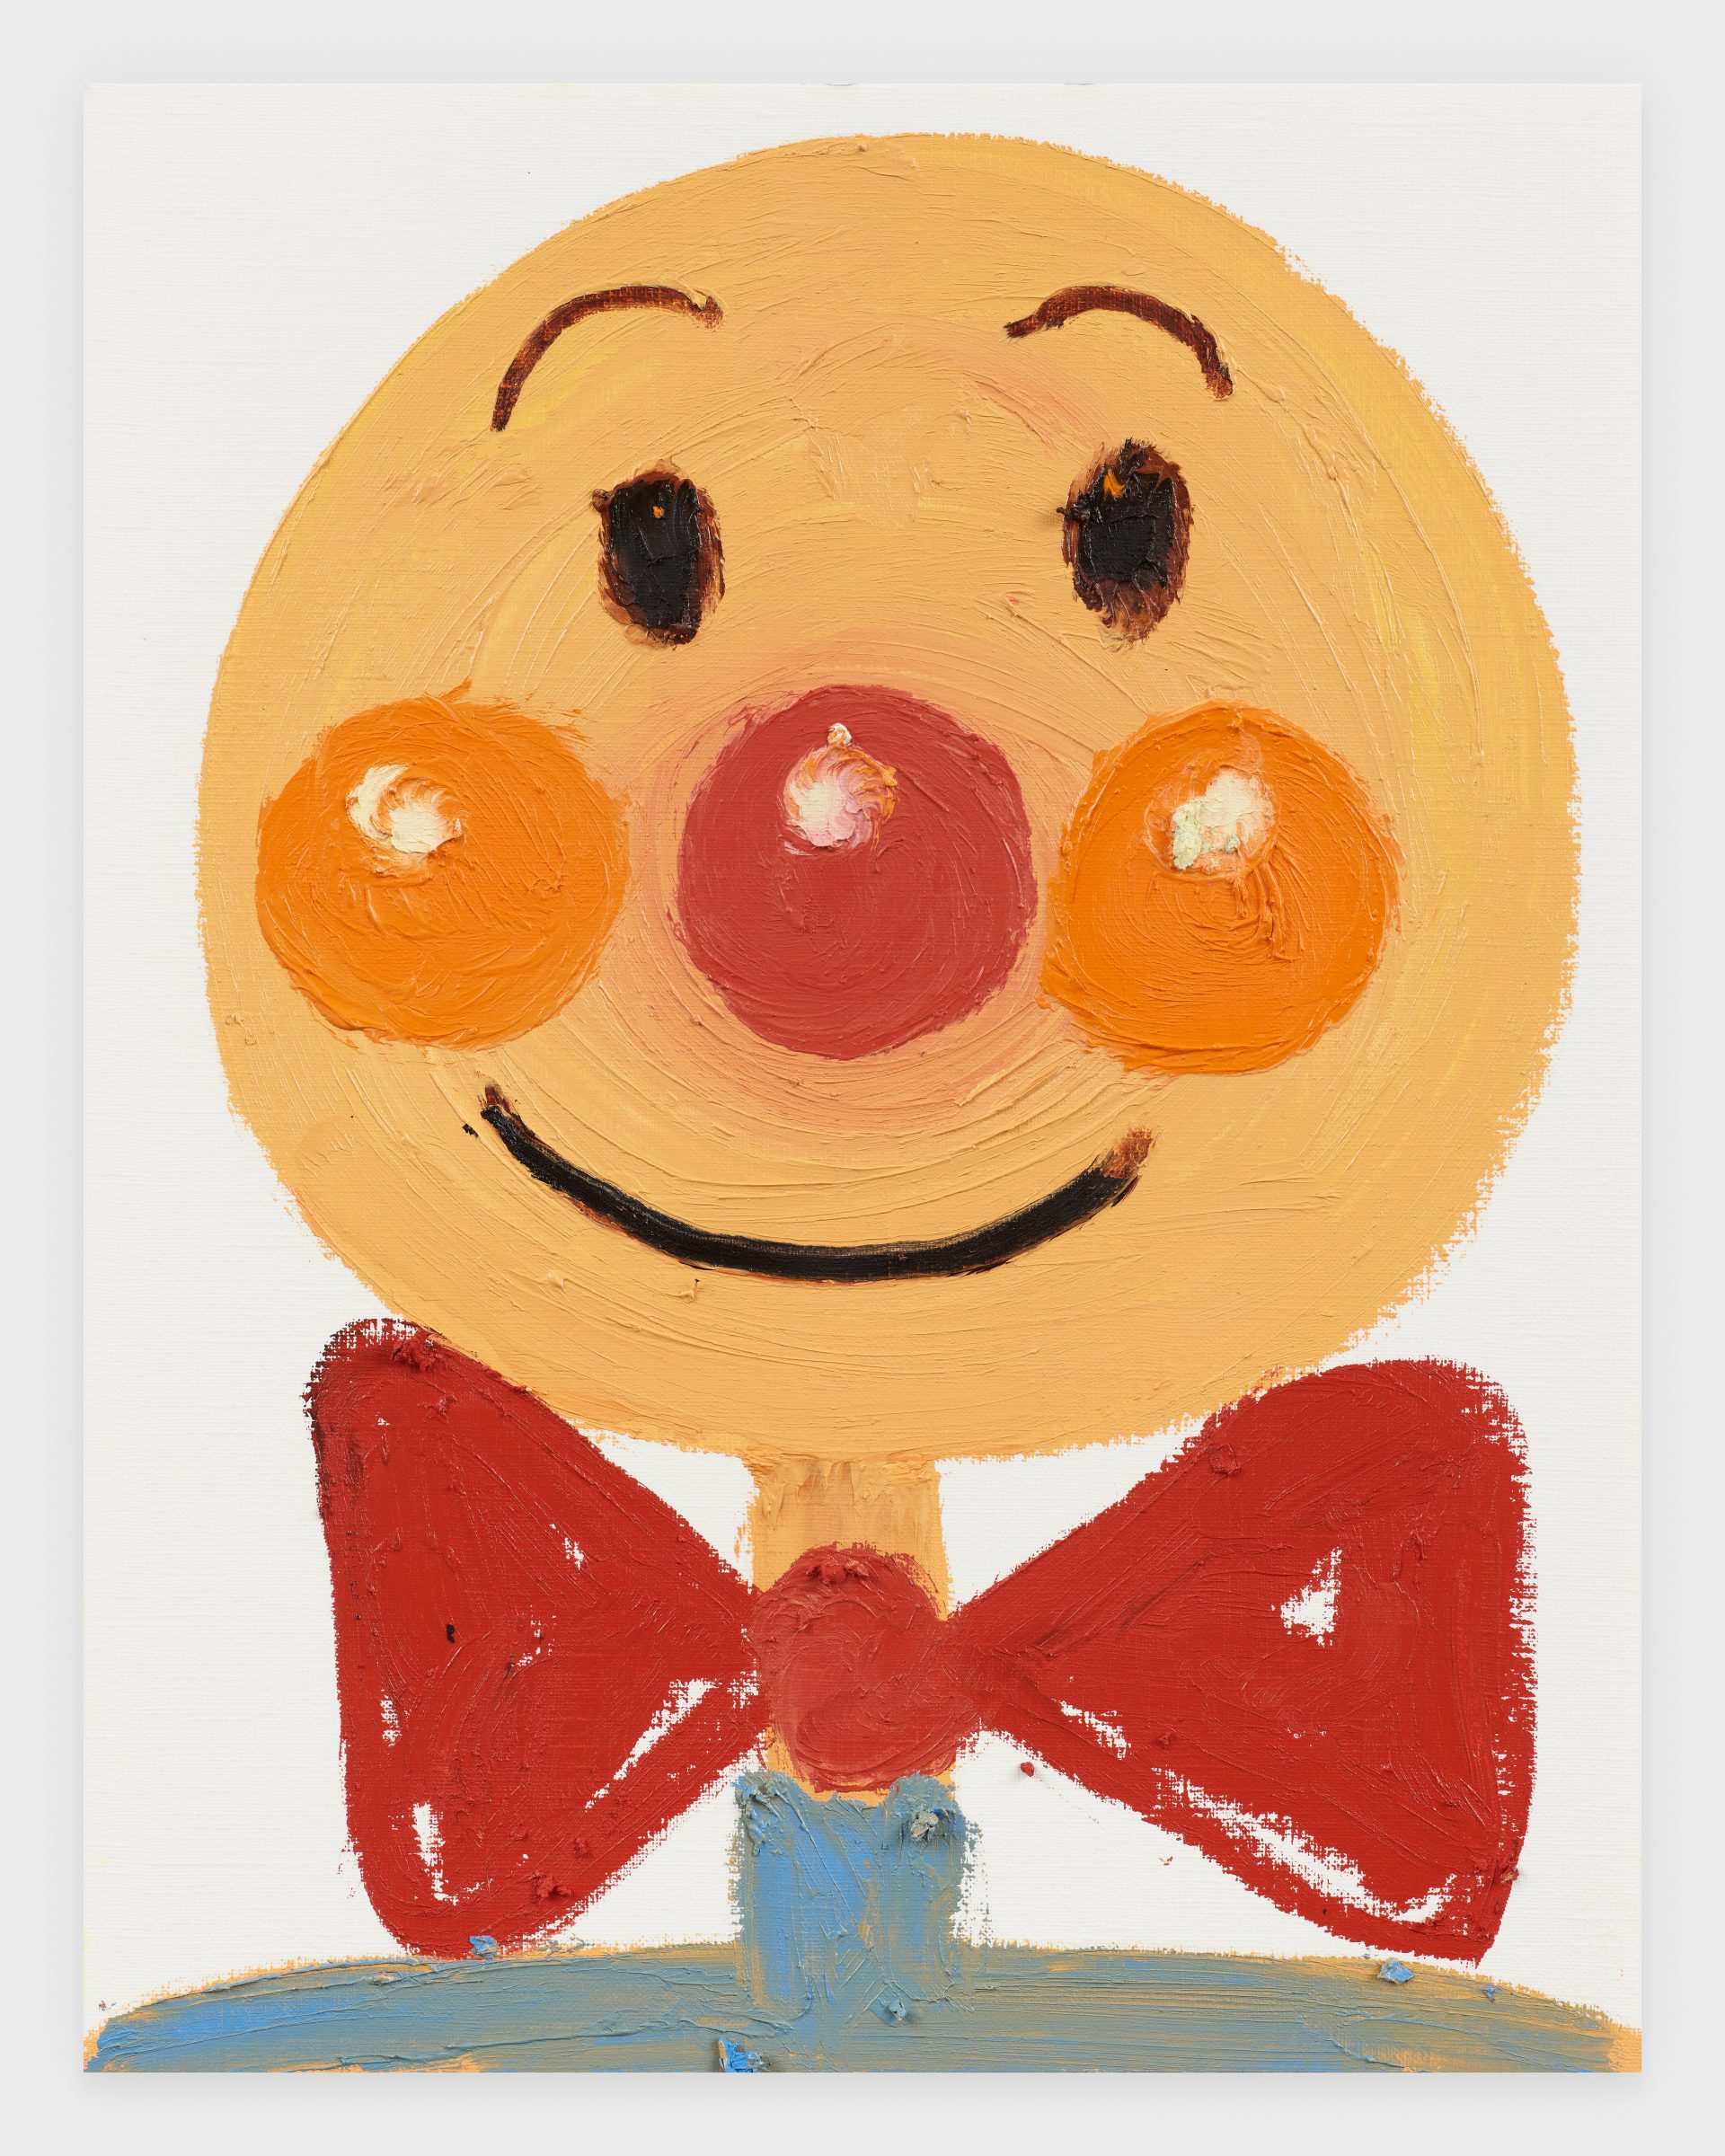 Anpanman, 2020, Oil stick on archival paper, 11 x 14 inches